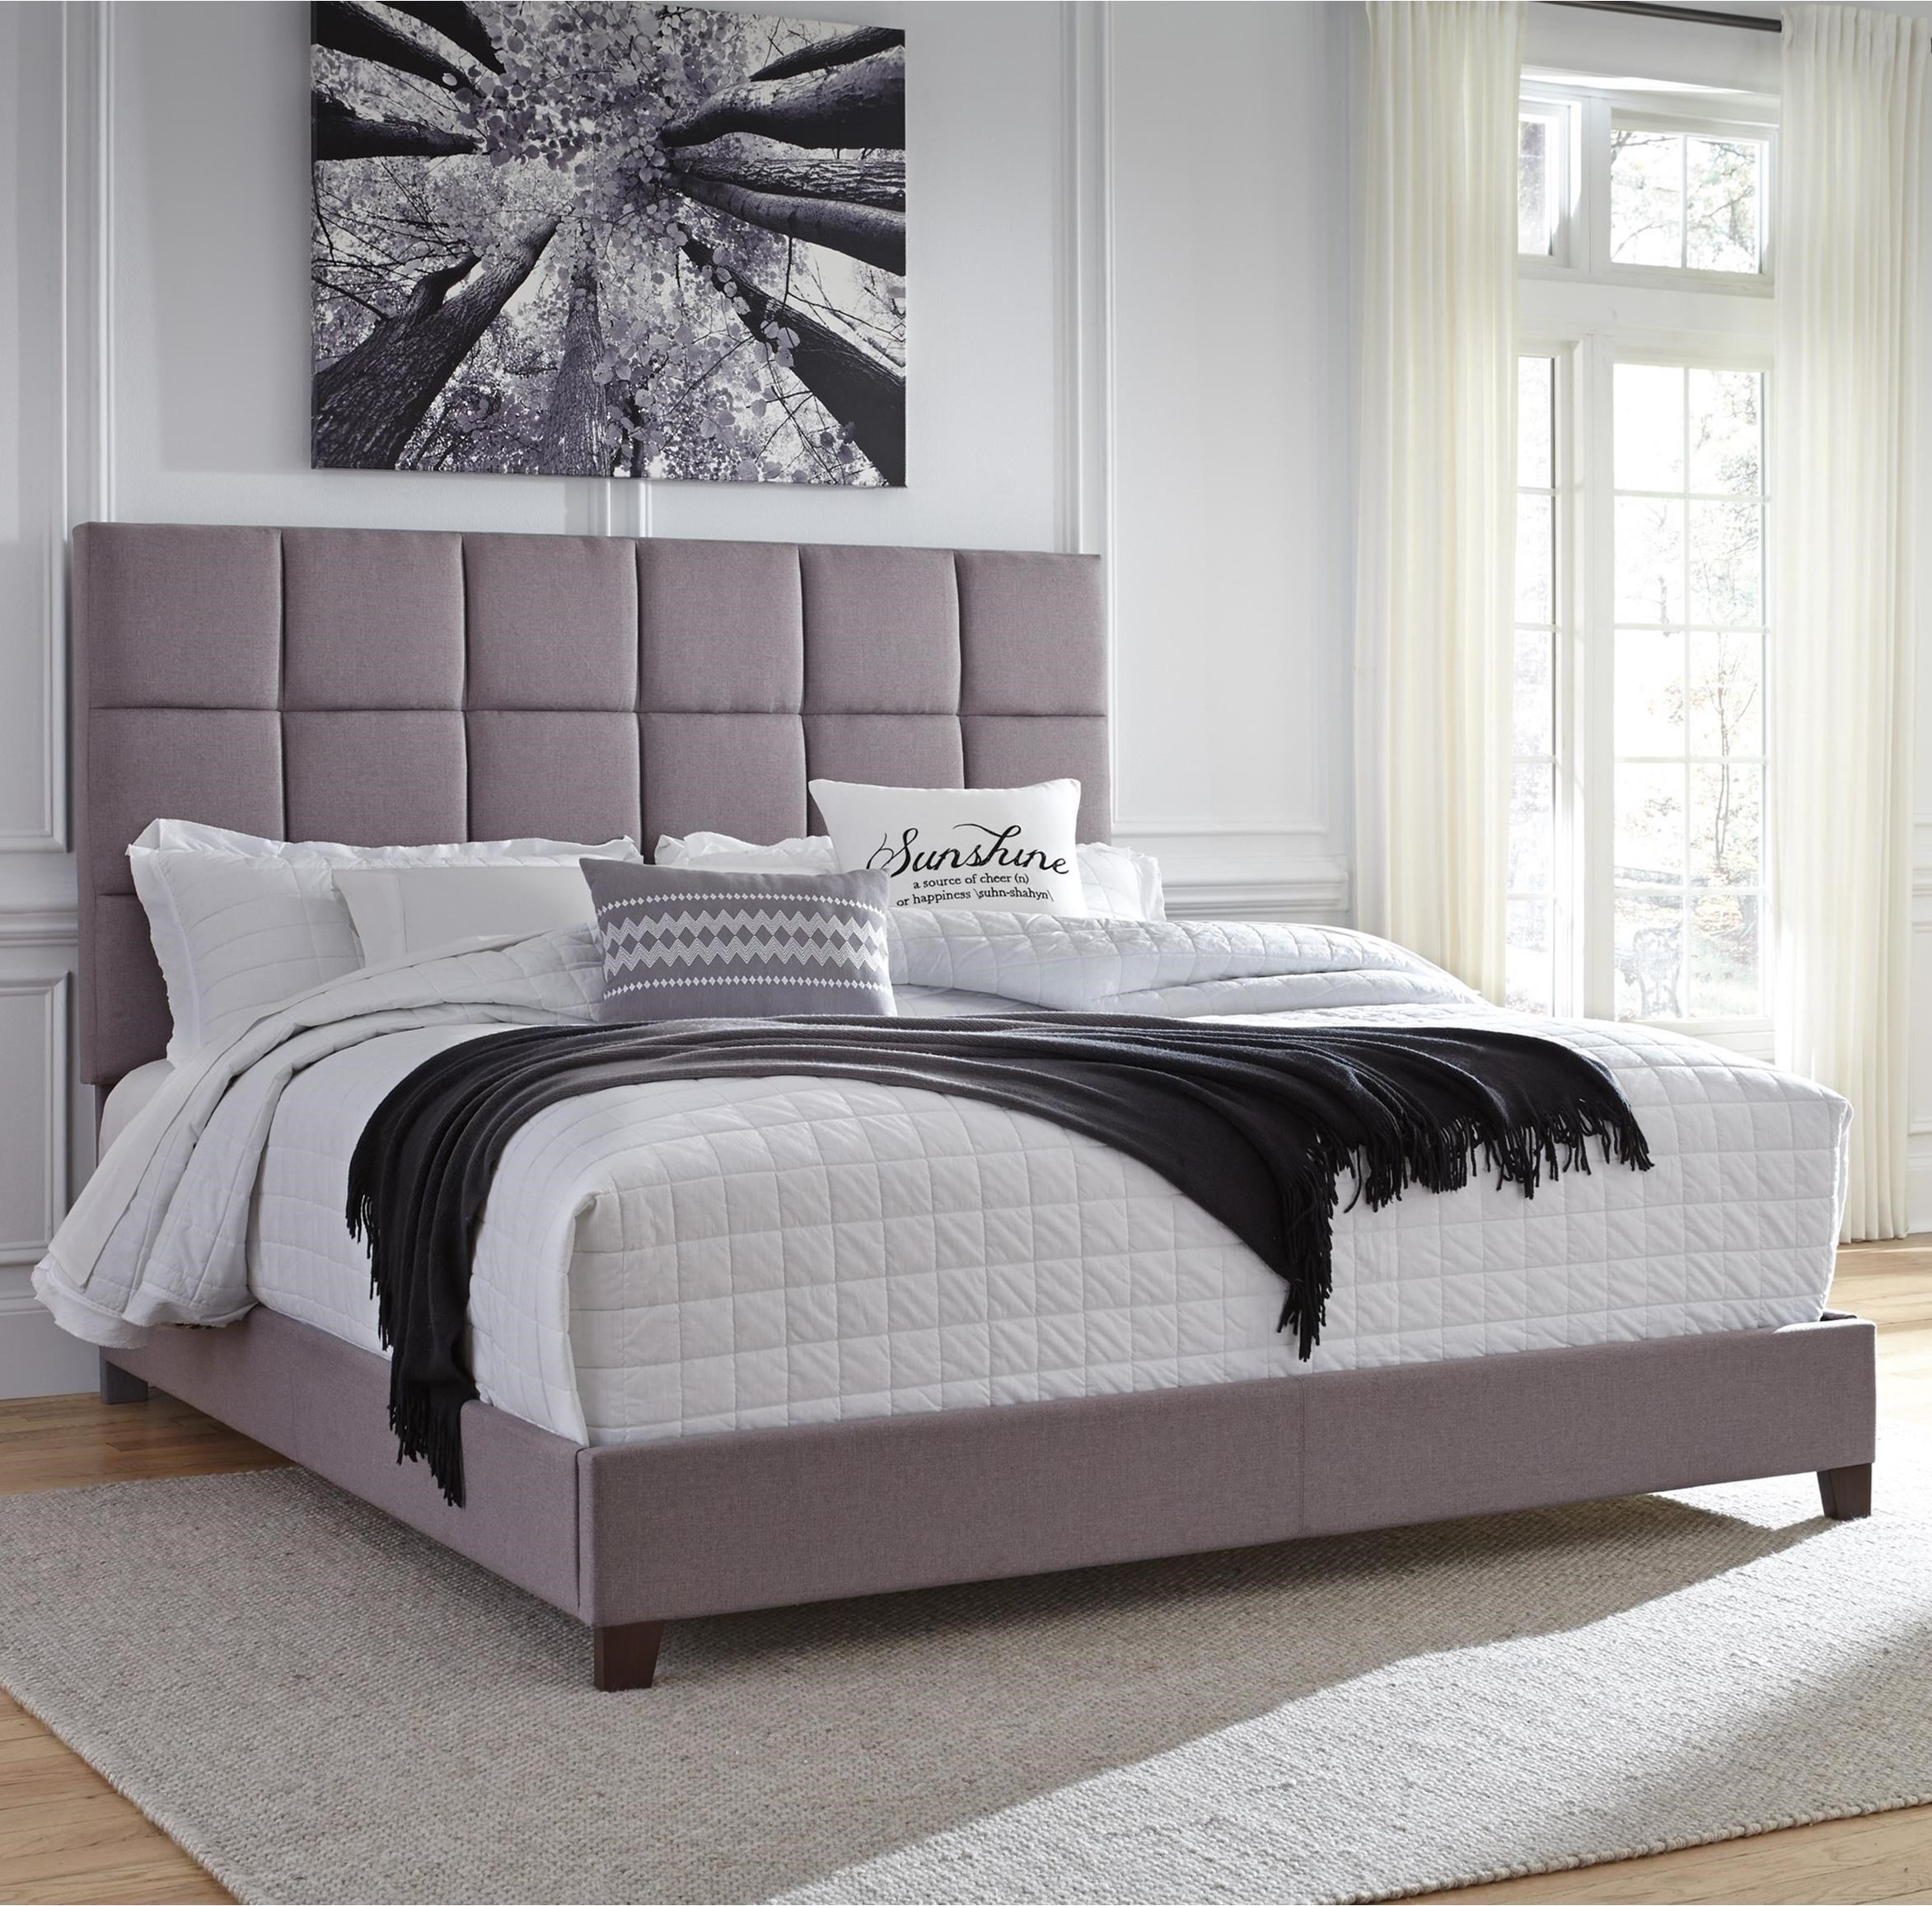 King Upholstered Bed In Gray Fabric By Signature Design By